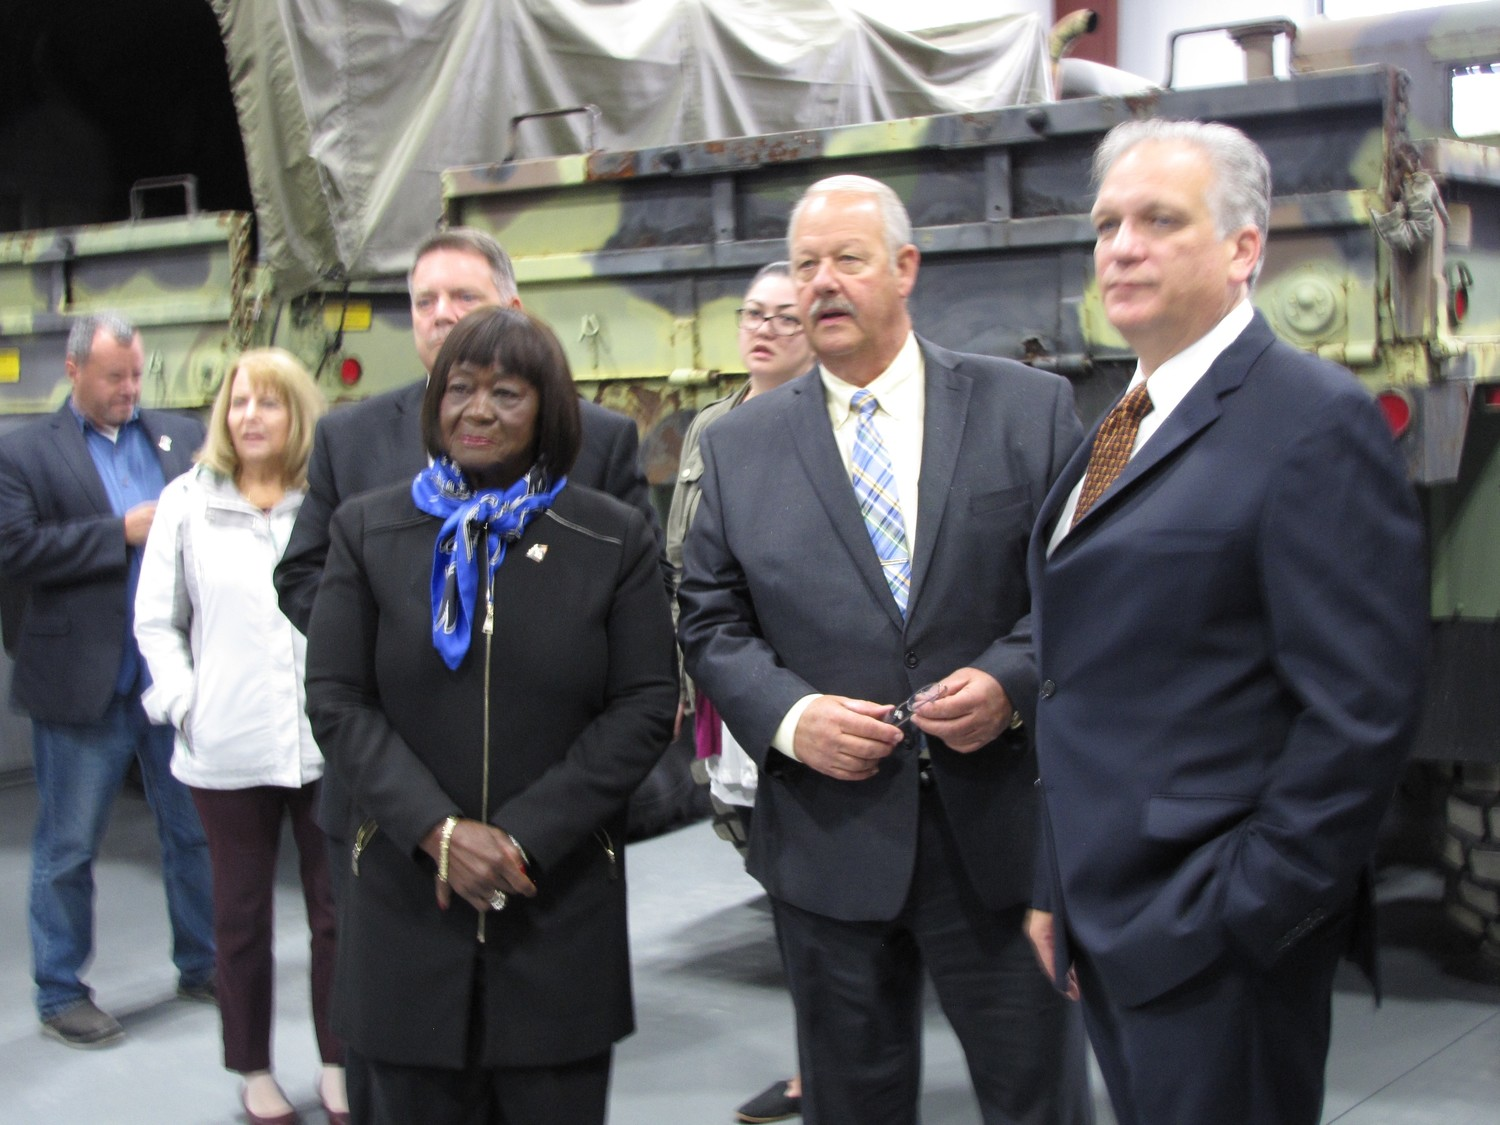 Among the attendees at the Freeport emergency management center's opening were Town of Hempstead Councilwoman Dorothy Goosby, left, Mayor Robert Kennedy and Nassau County Executive Ed Mangano.